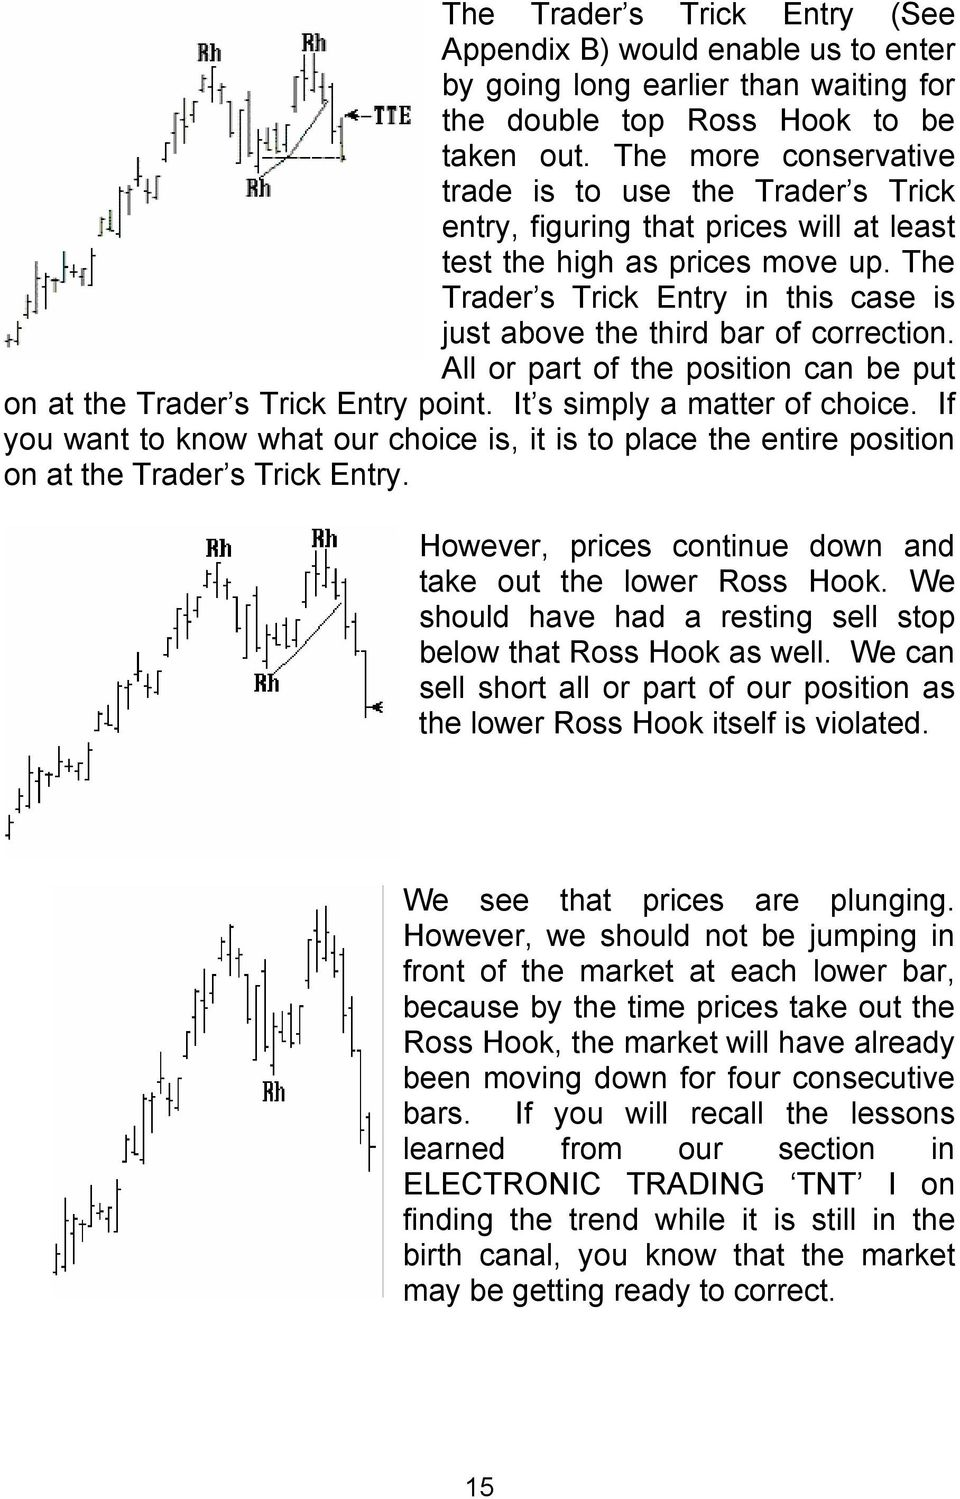 The Trader s Trick Entry in this case is just above the third bar of correction. All or part of the position can be put on at the Trader s Trick Entry point. It s simply a matter of choice.